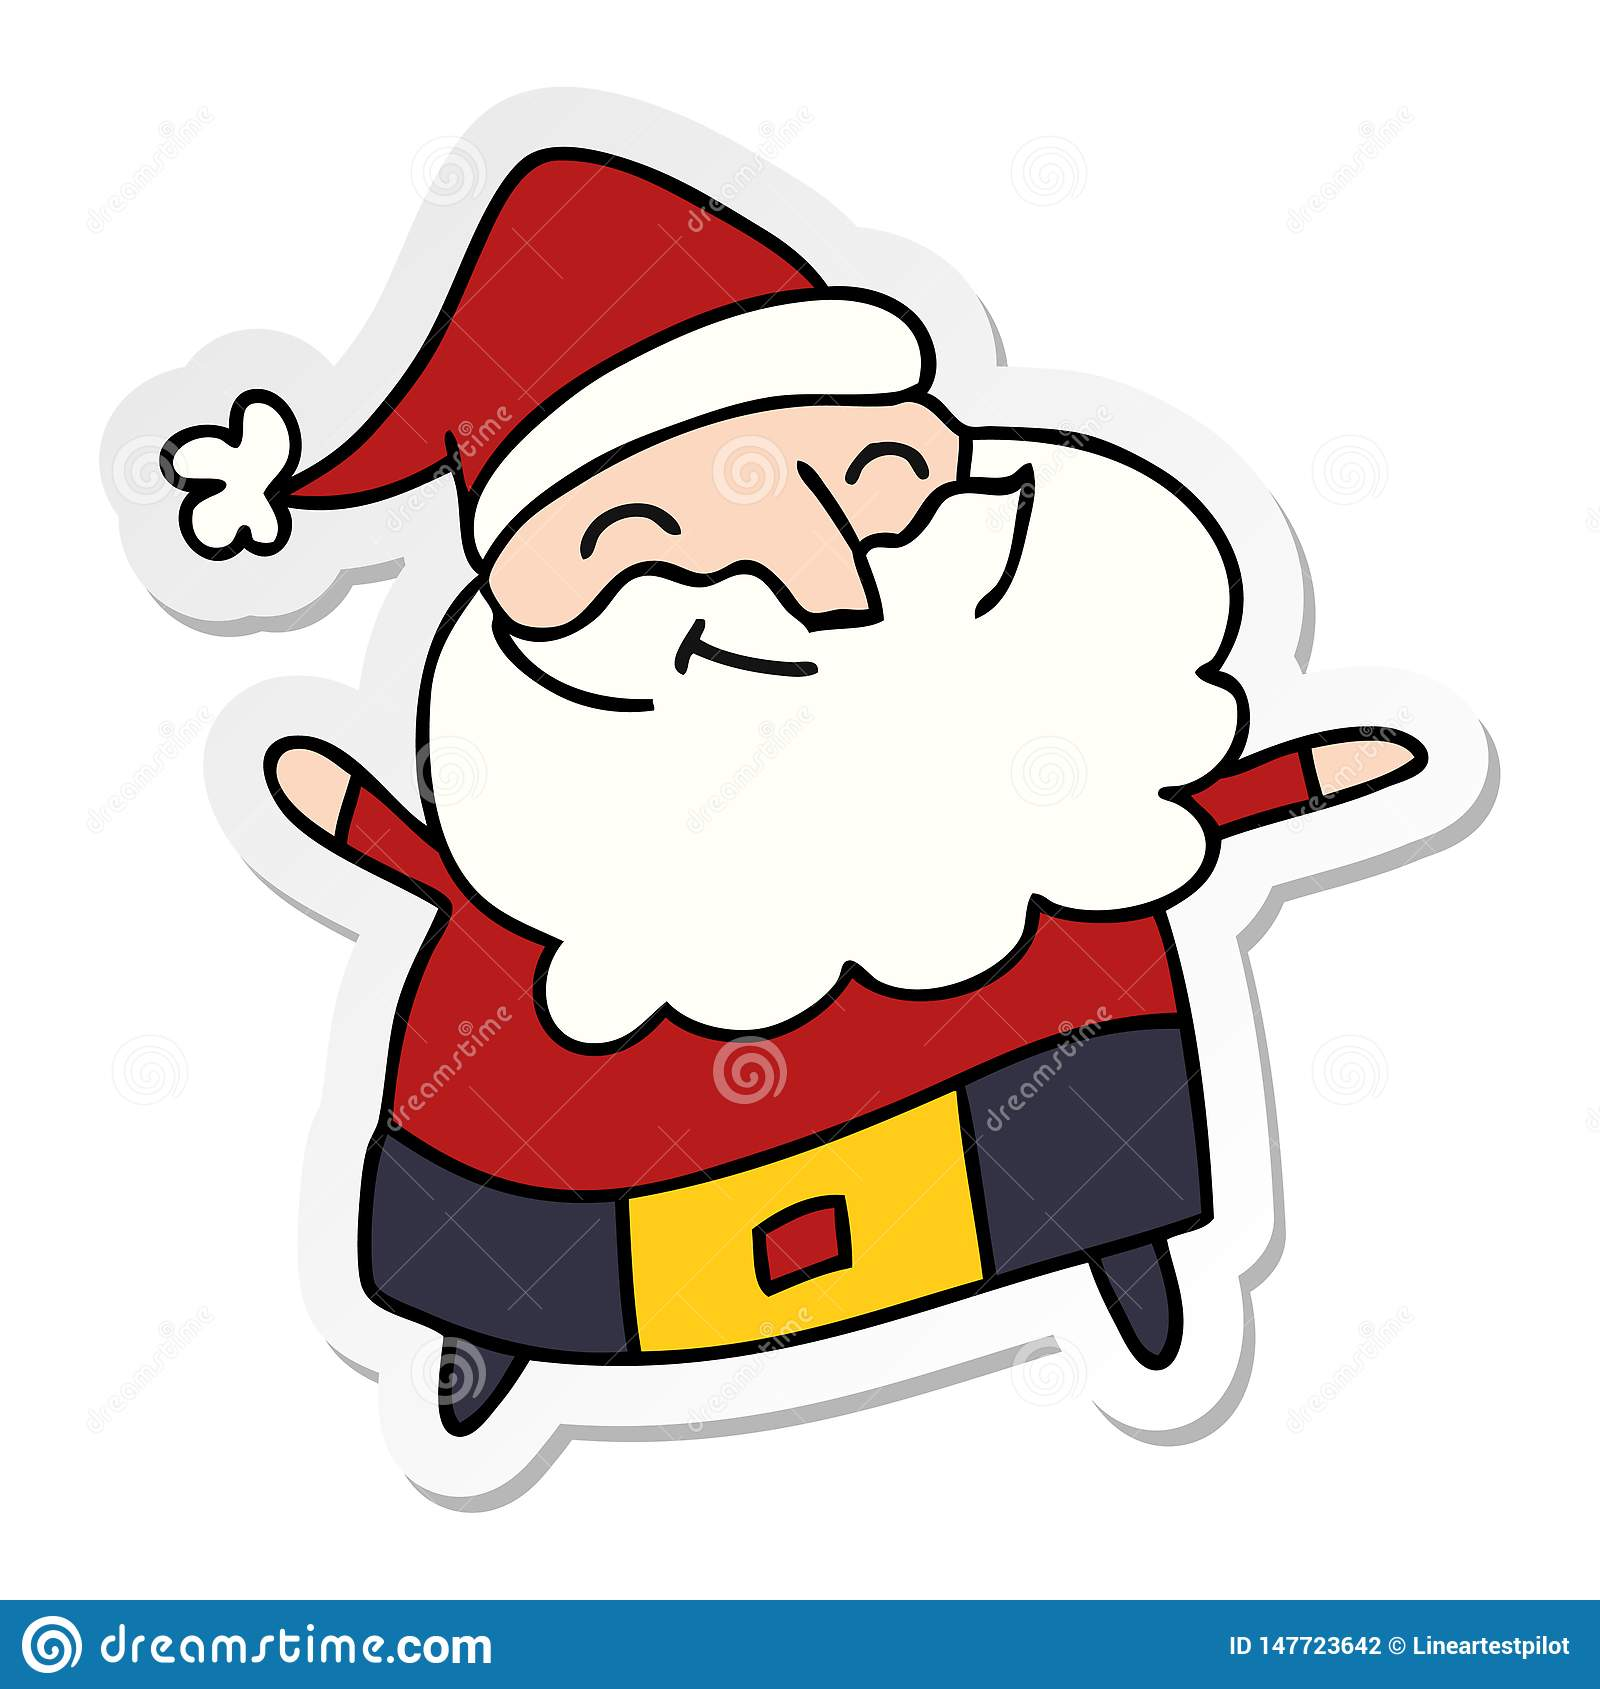 Father Christmas Cartoon Images.Sticker Cartoon Of A Jolly Father Christmas Stock Vector